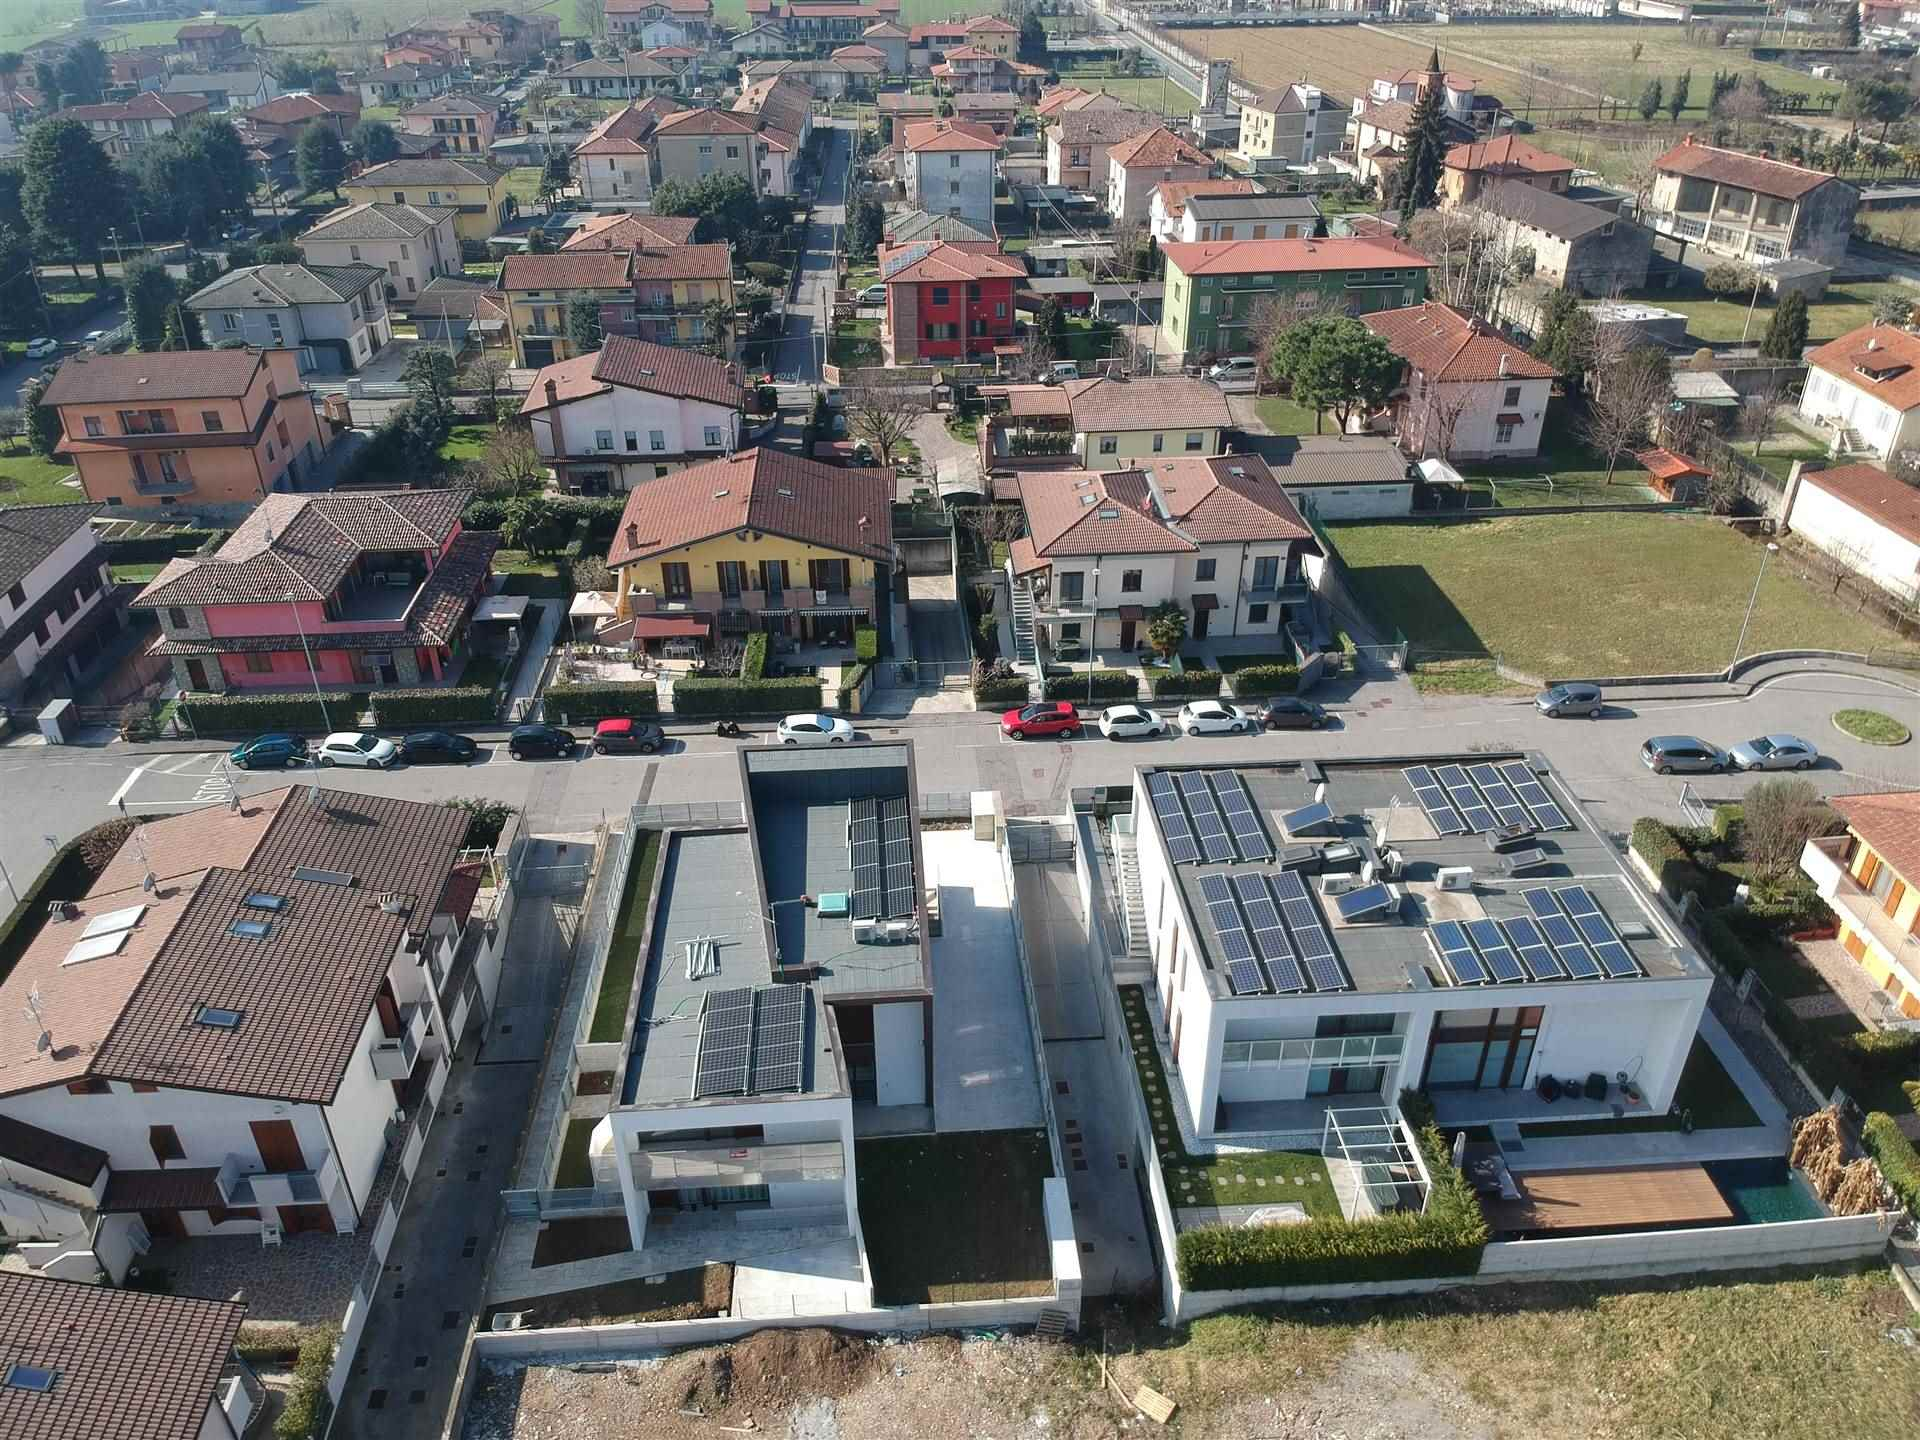 drone cantiere 2